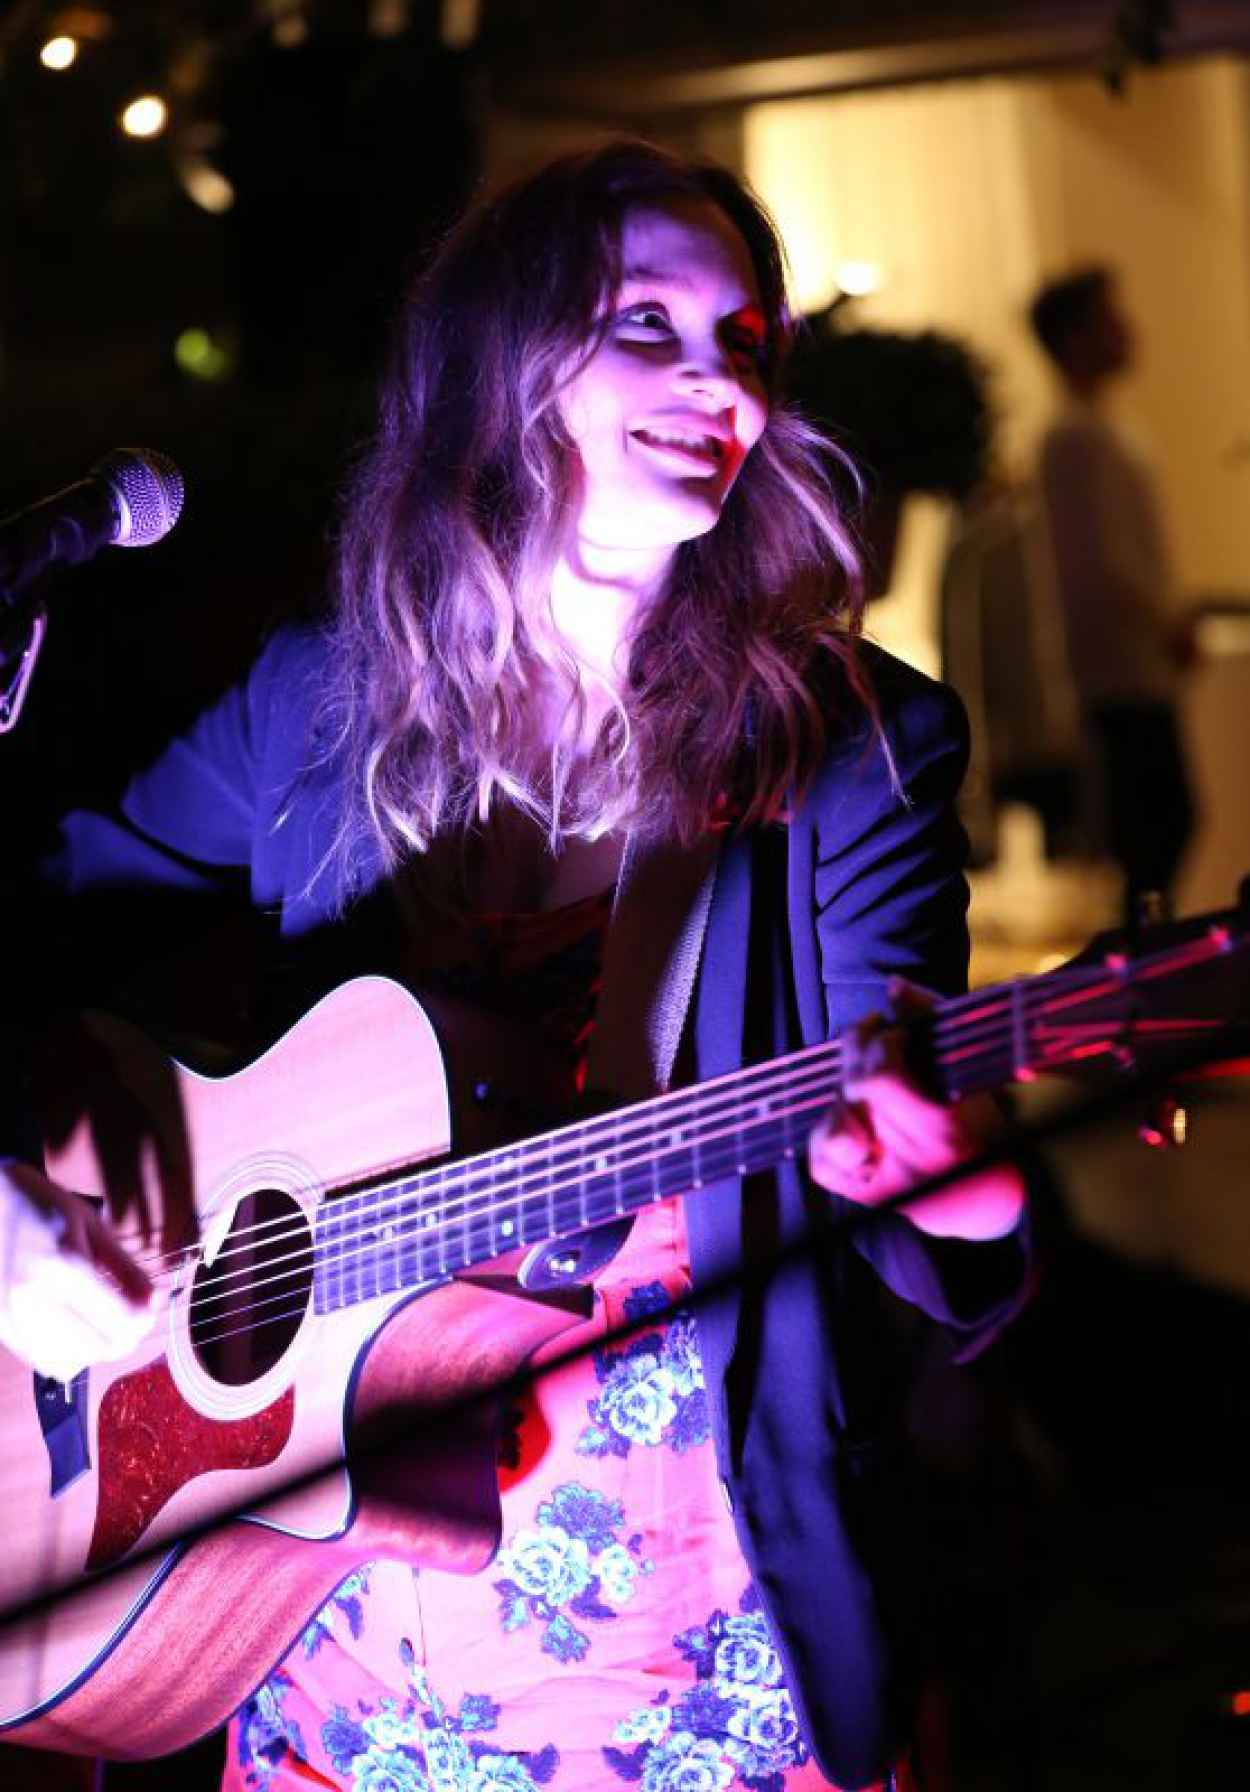 Leighton Meester Performing at The Skybar in West Hollywood, April 2015-1